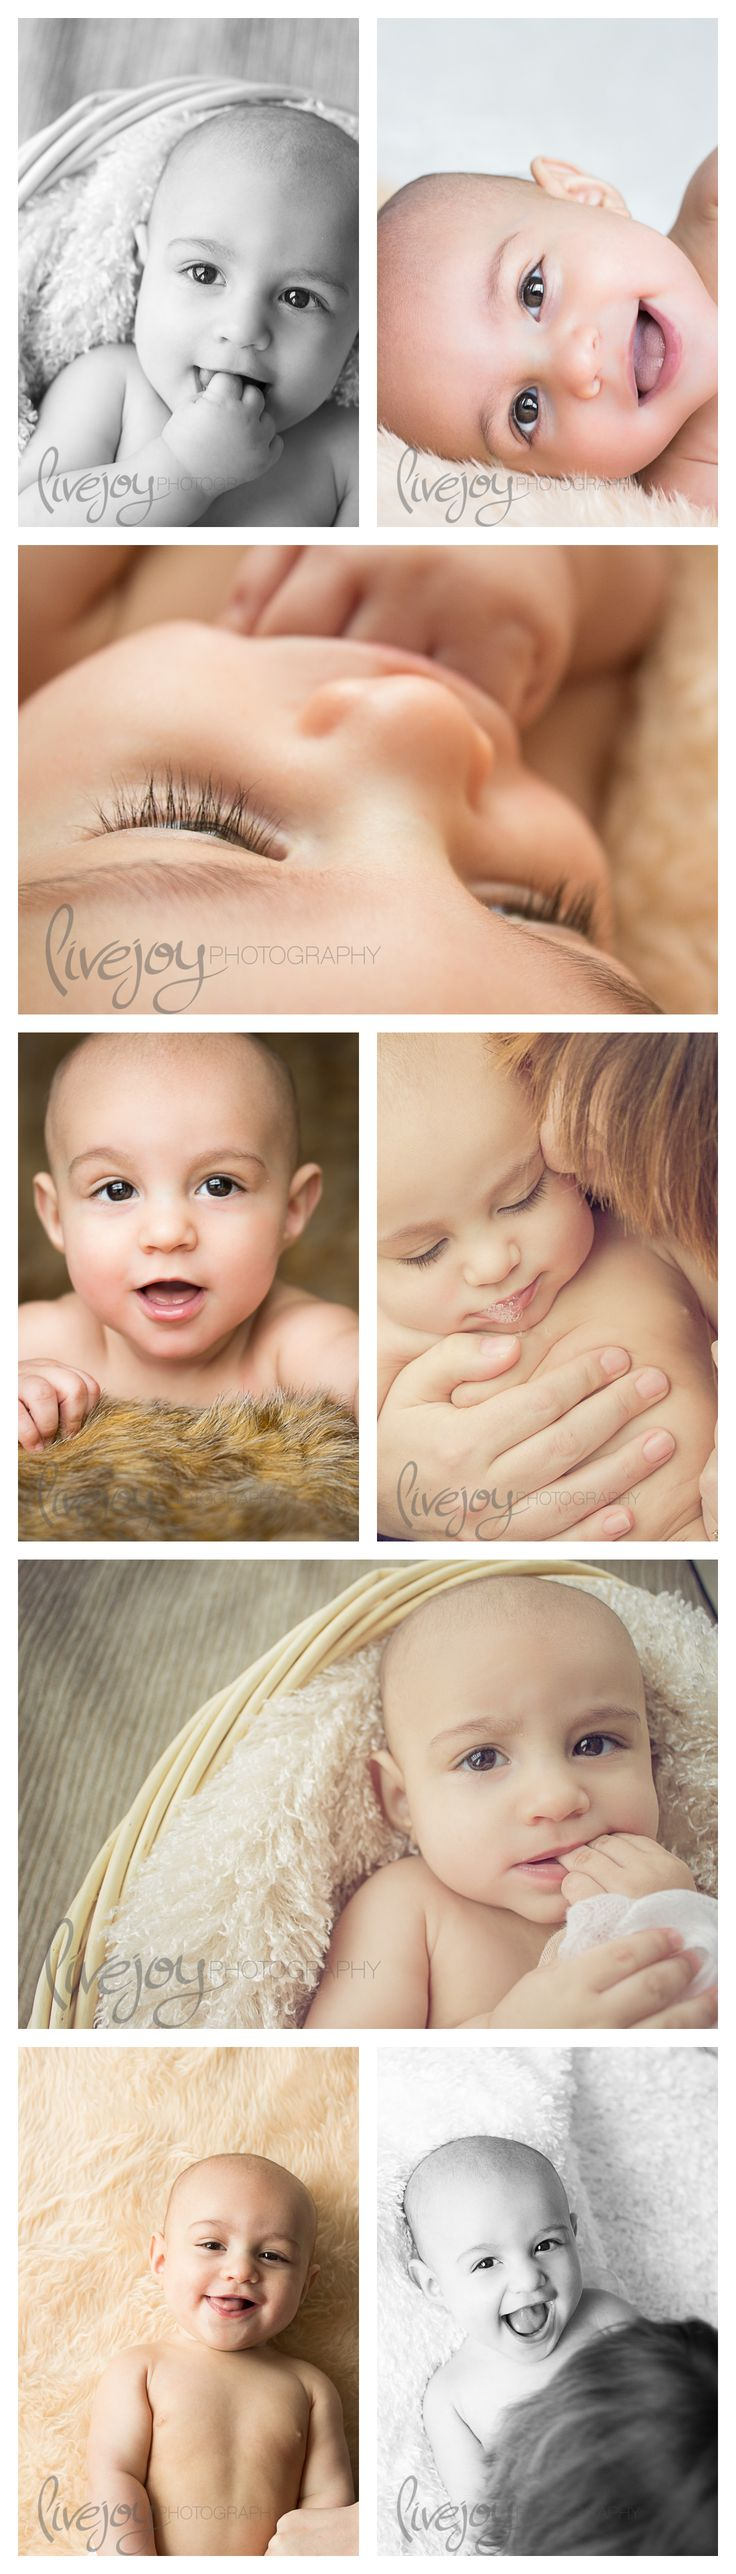 6 Month Photography Session / Six Month Baby Photography #LiveJoyPhotography